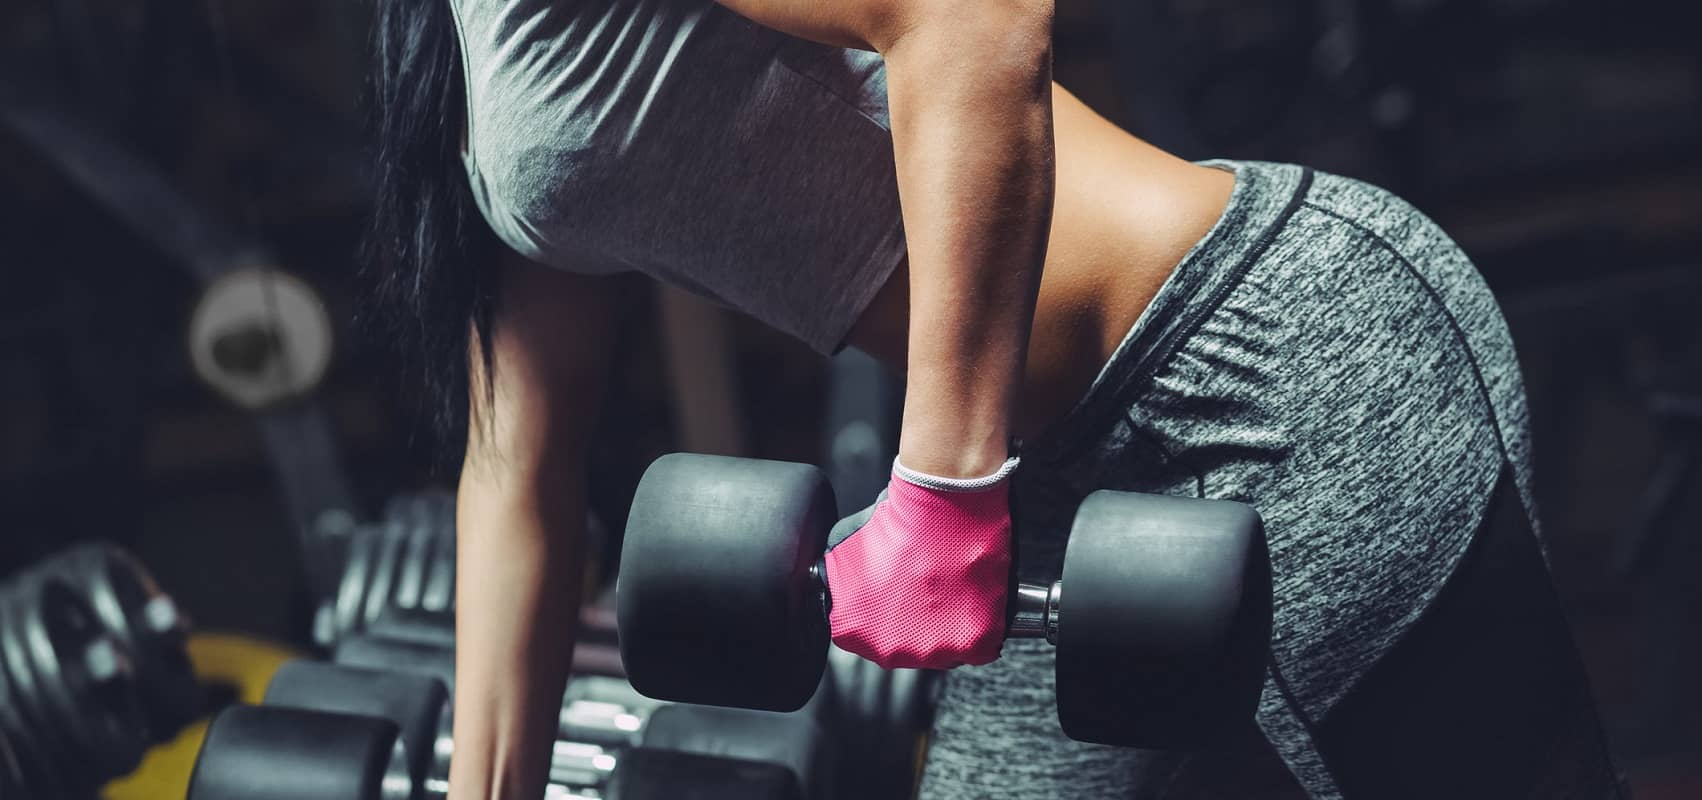 Full Body Workout Routine with Dumbbells